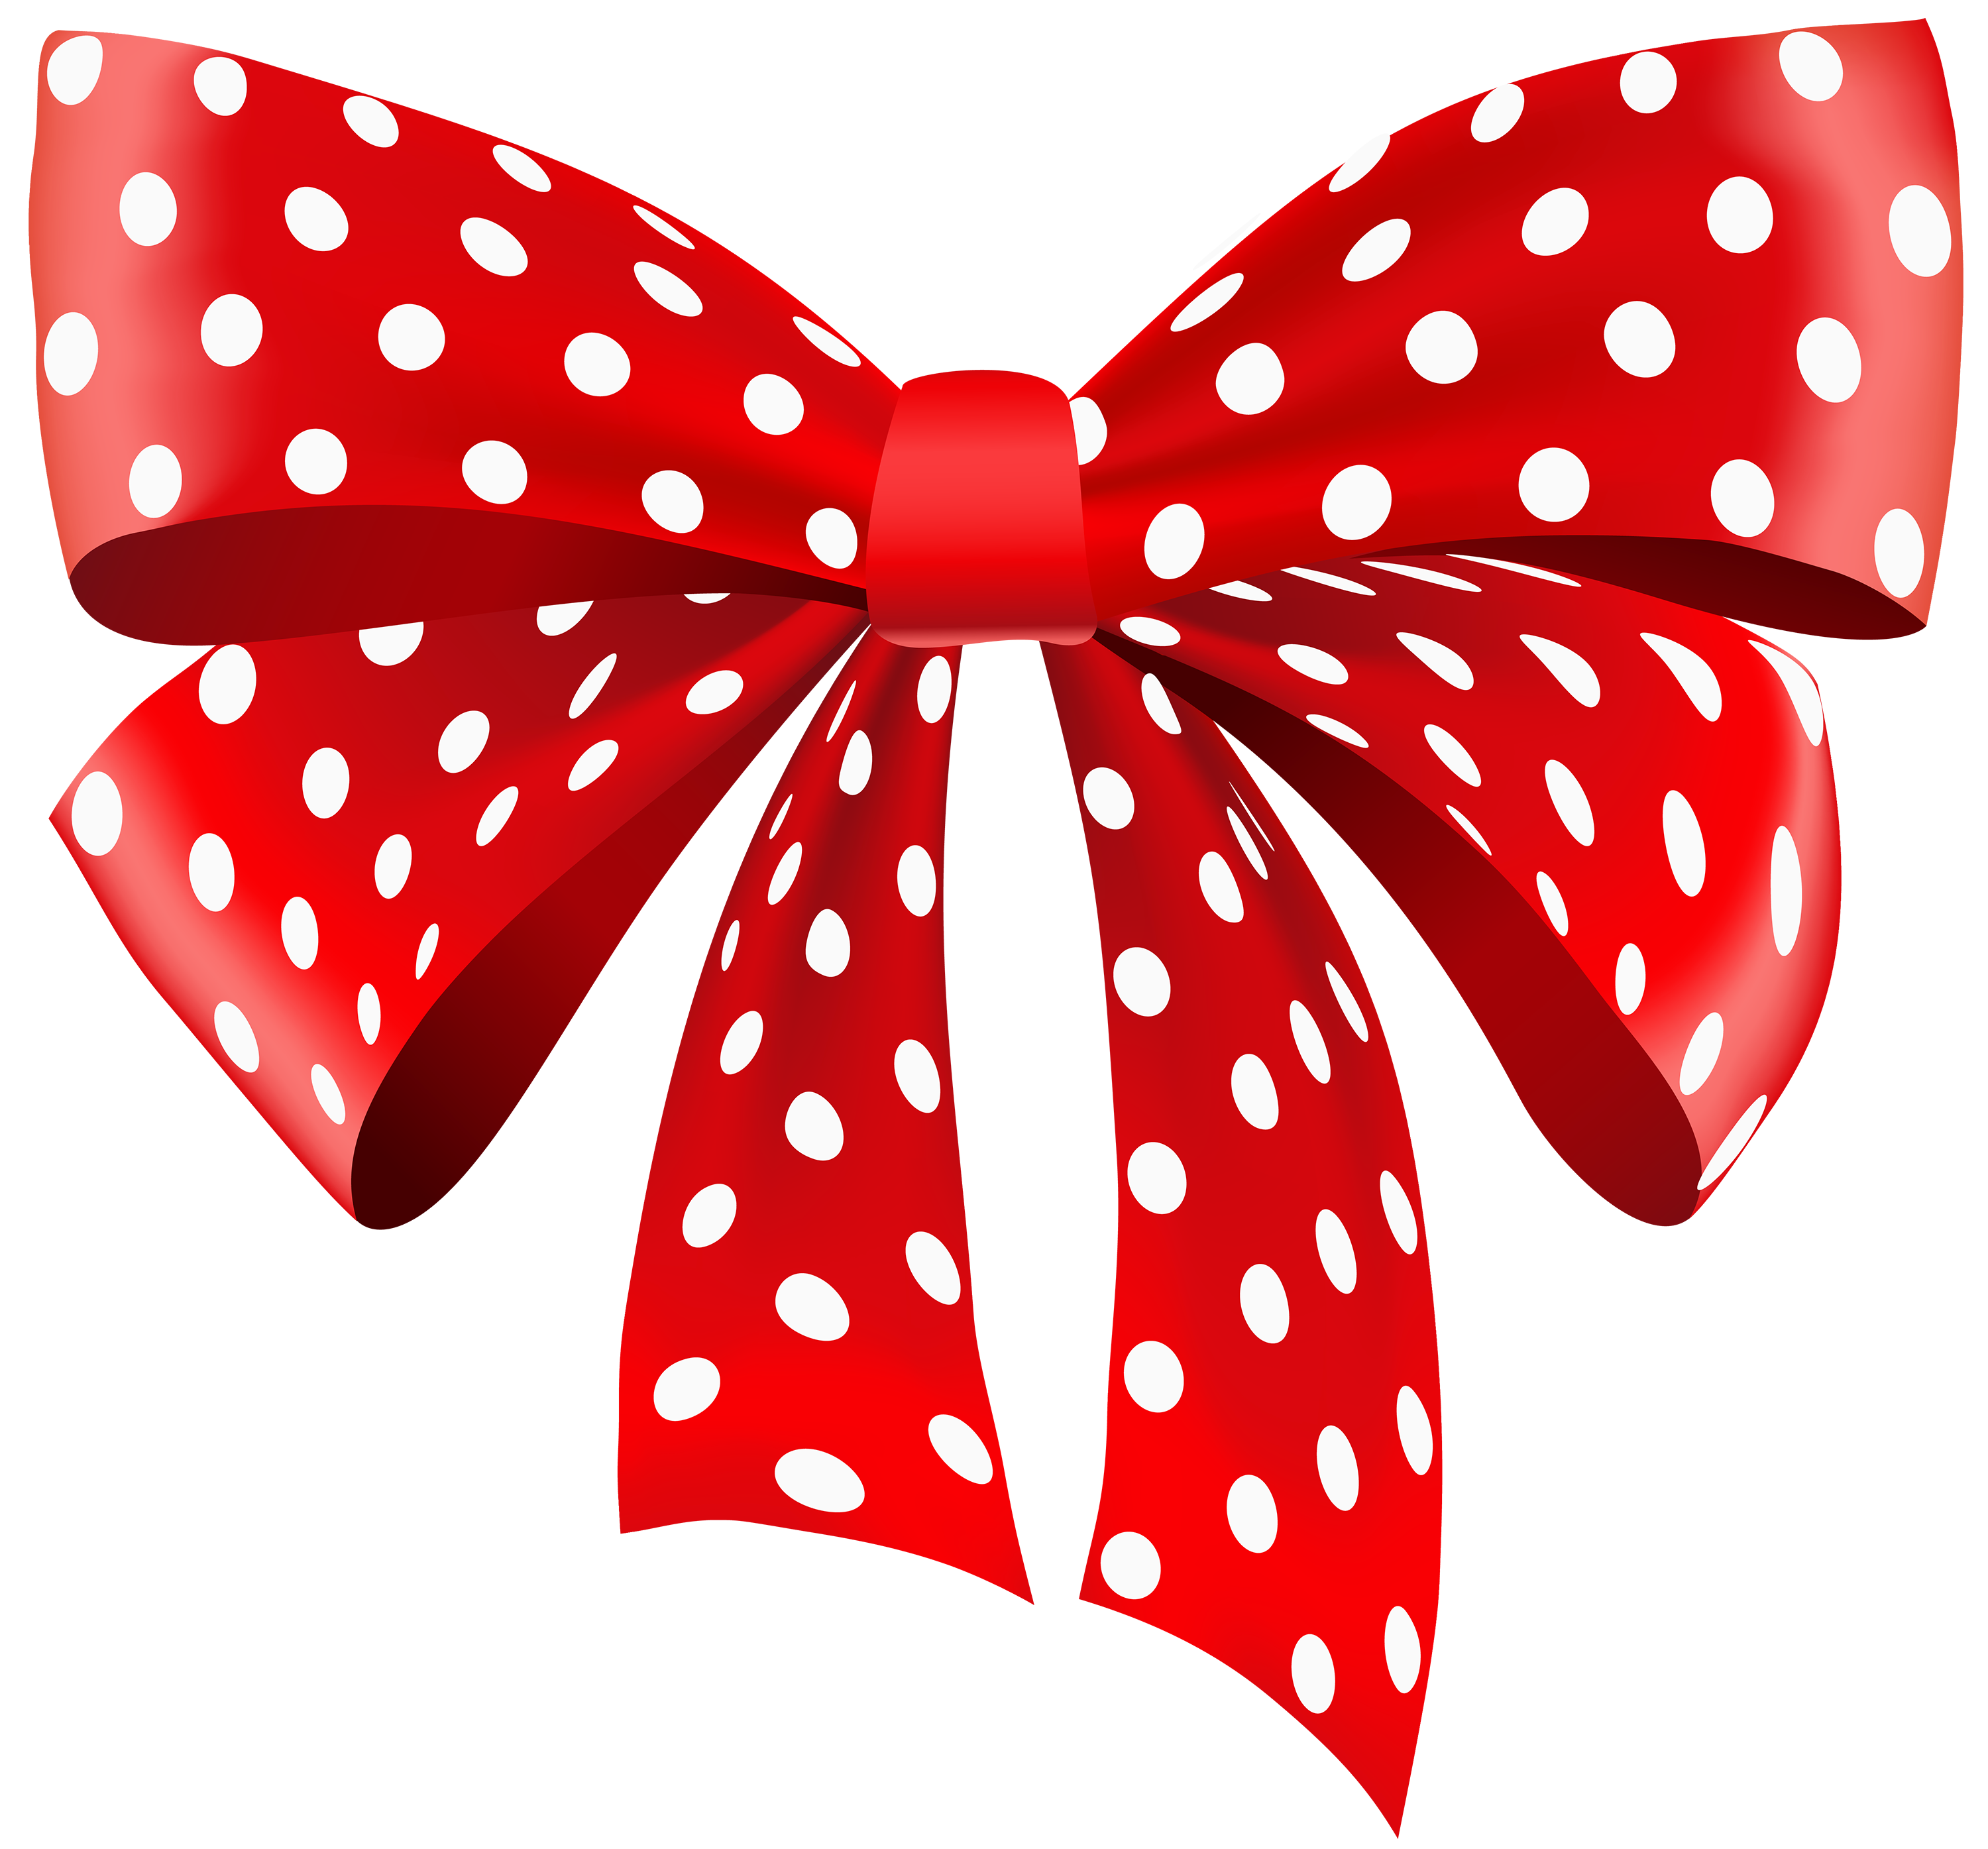 Clipart ribbon png clipart royalty free download Red Dotted Ribbon PNG Clipart - Best WEB Clipart clipart royalty free download